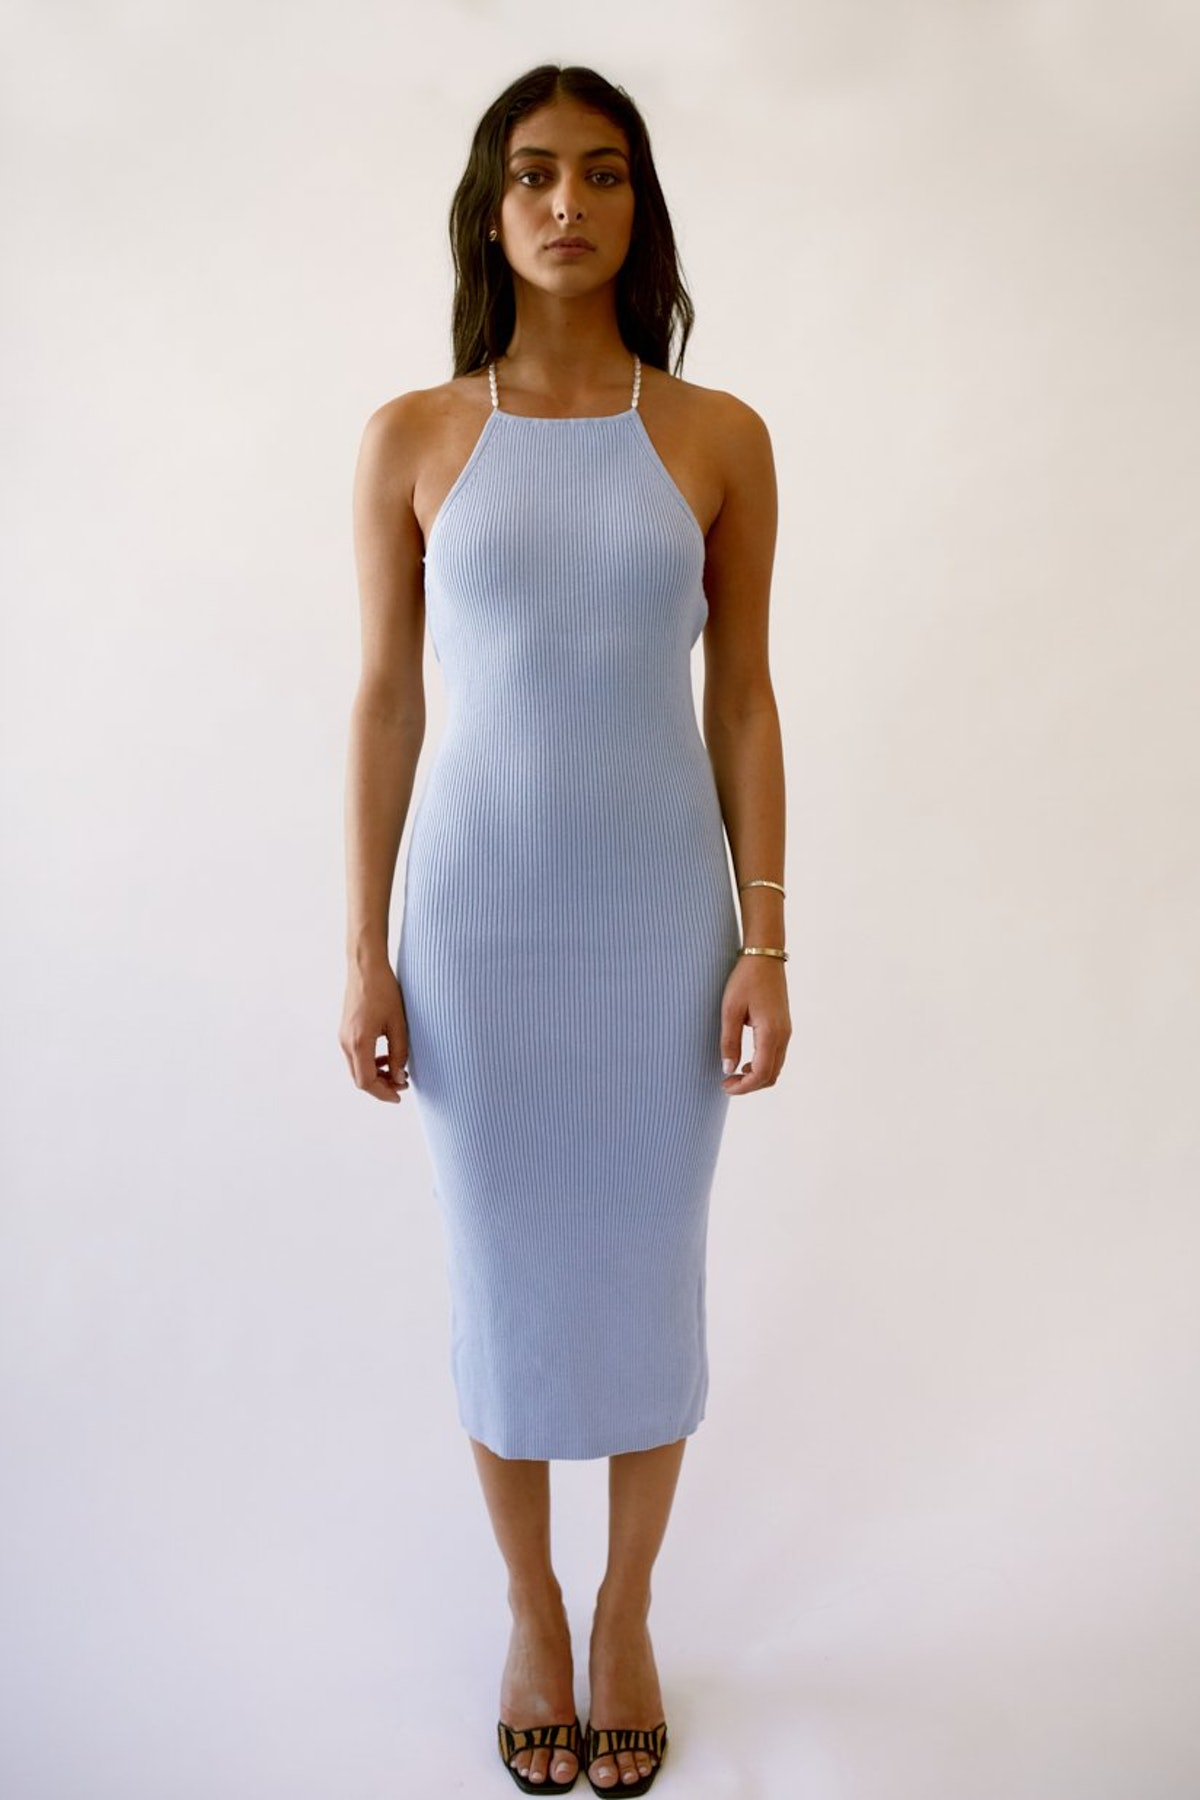 Delila Mid-Length Knitted Dress from Musier Paris.